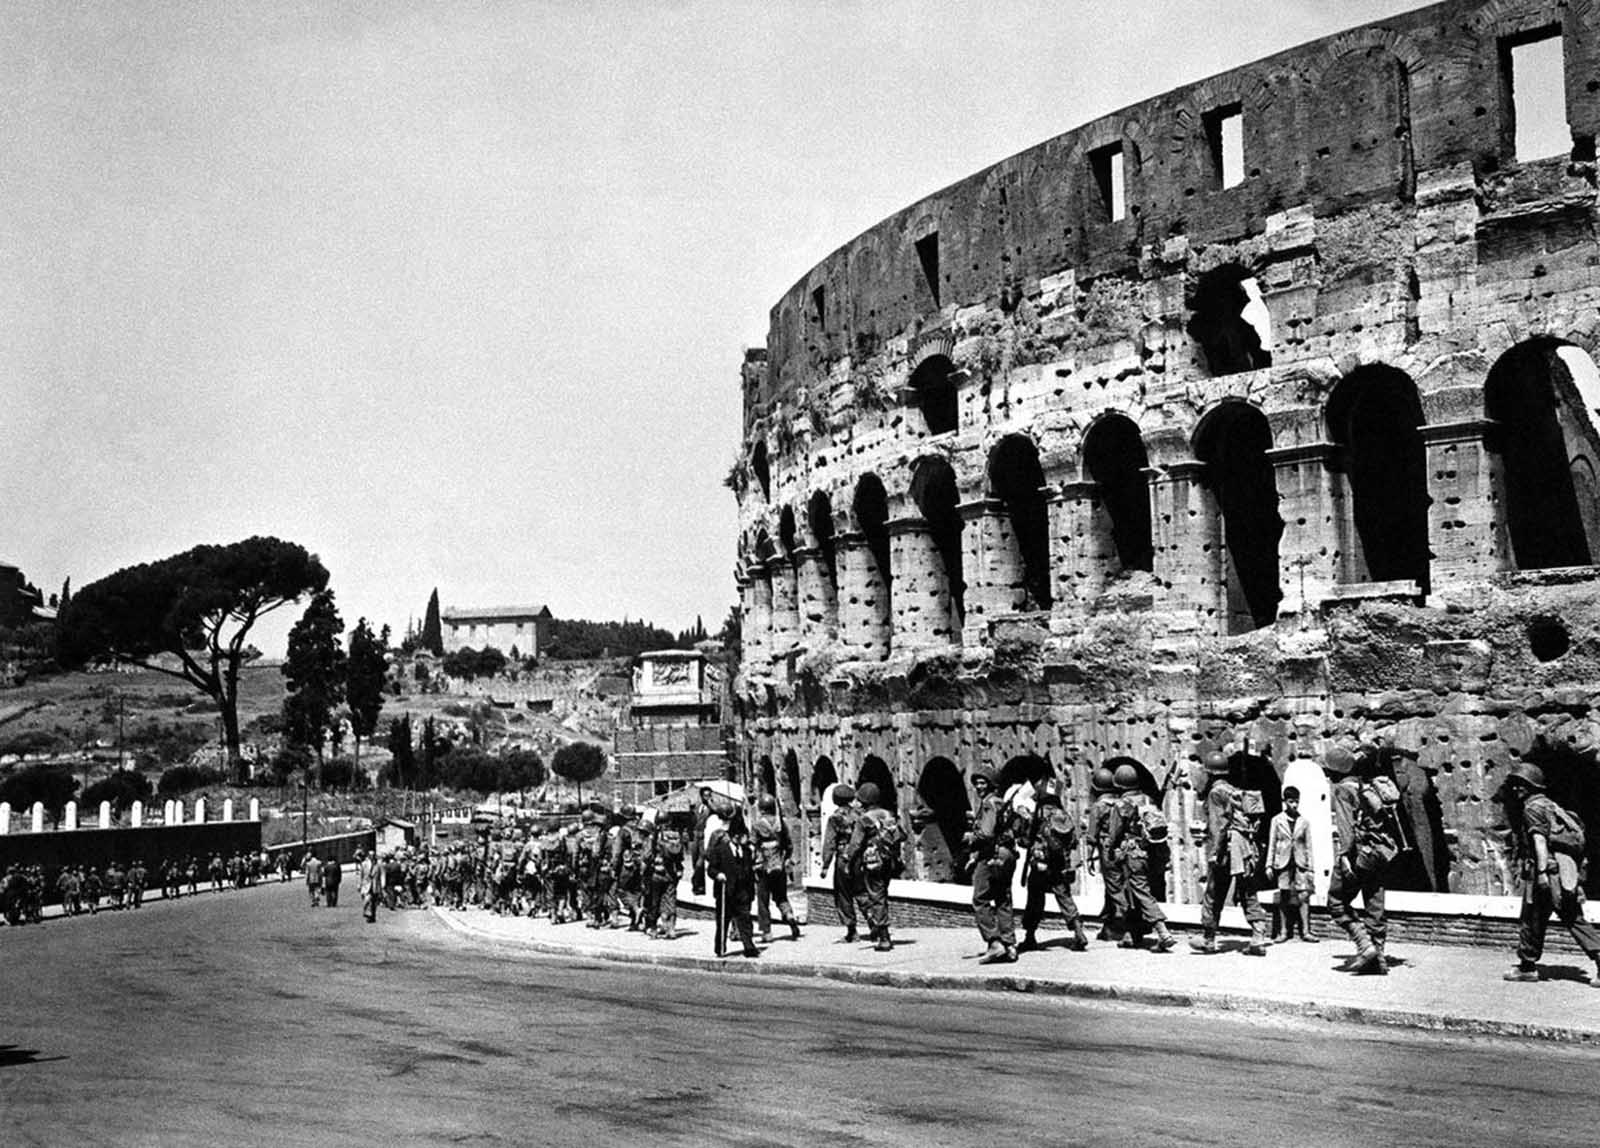 U.S. soldiers march past the historical Roman Colosseum and follow their retreating enemy in Rome, Italy, on June 5, 1944.